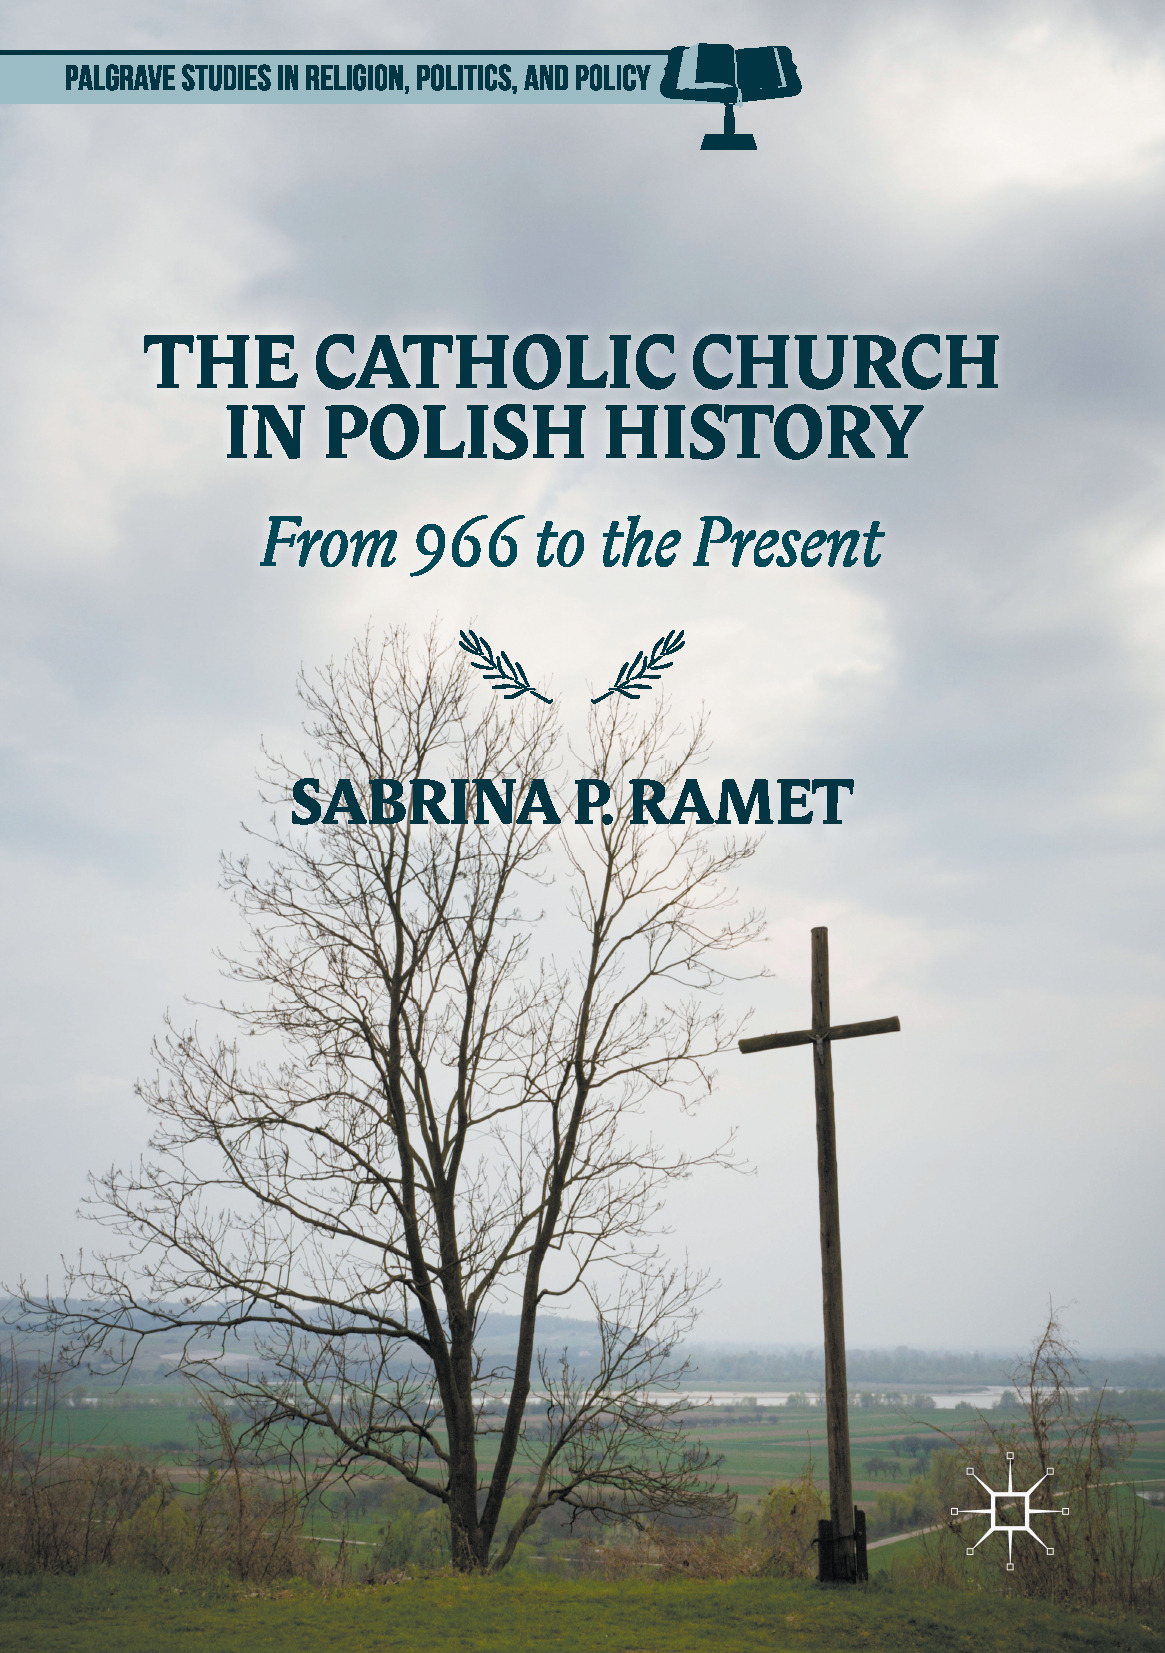 Ramet, Sabrina P. - The Catholic Church in Polish History, ebook